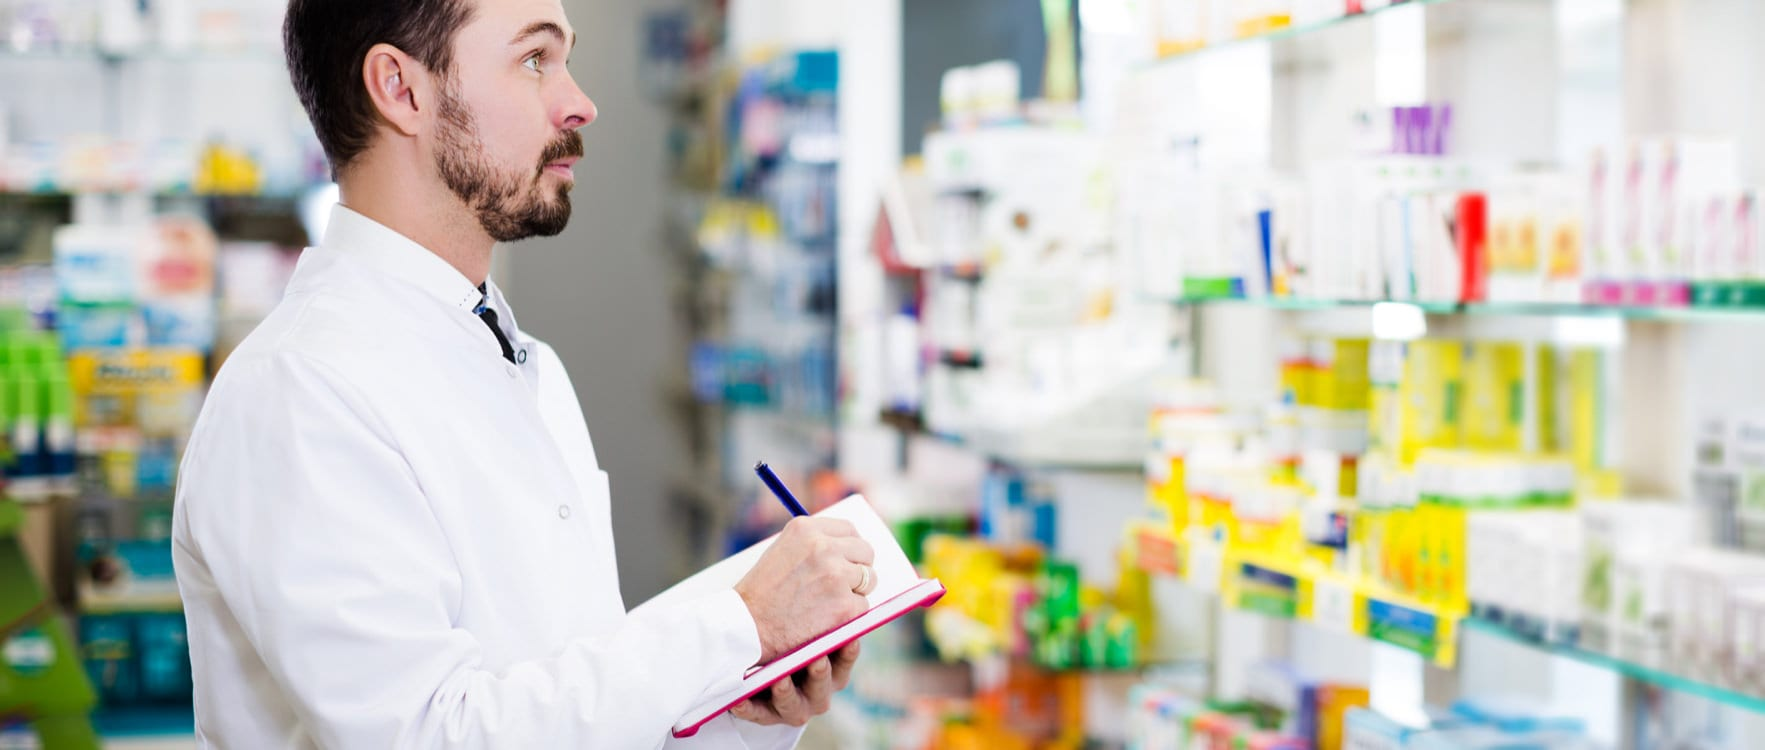 Male pharmacist taking notes while looking at medicine in the shelves of a pharmacy